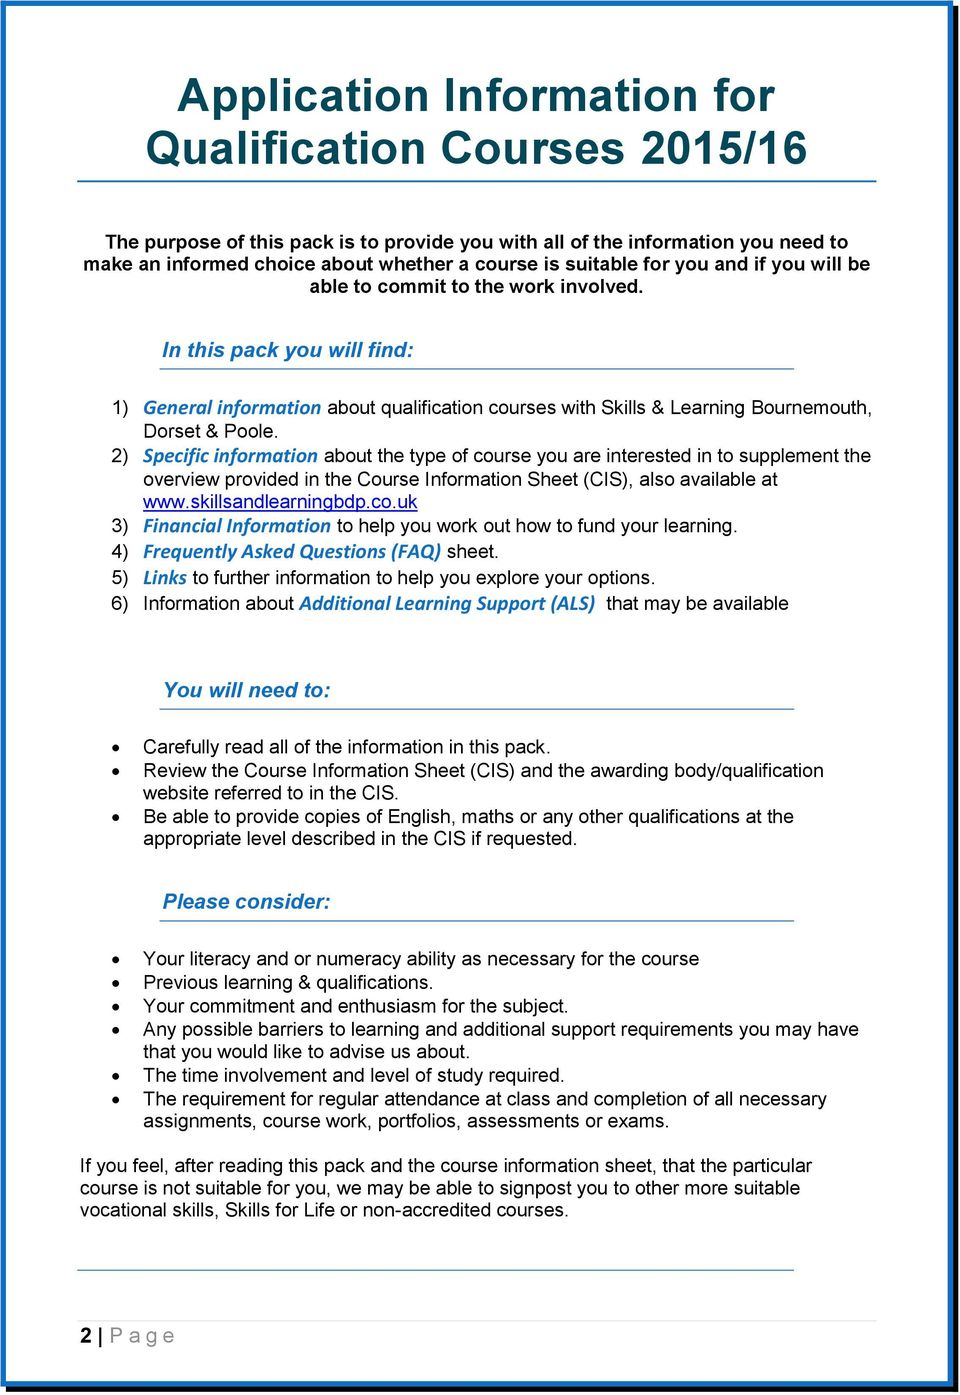 2) Specific information about the type of course you are interested in to supplement the overview provided in the Course Information Sheet (CIS), also available at www.skillsandlearningbdp.co.uk 3) Financial Information to help you work out how to fund your learning.